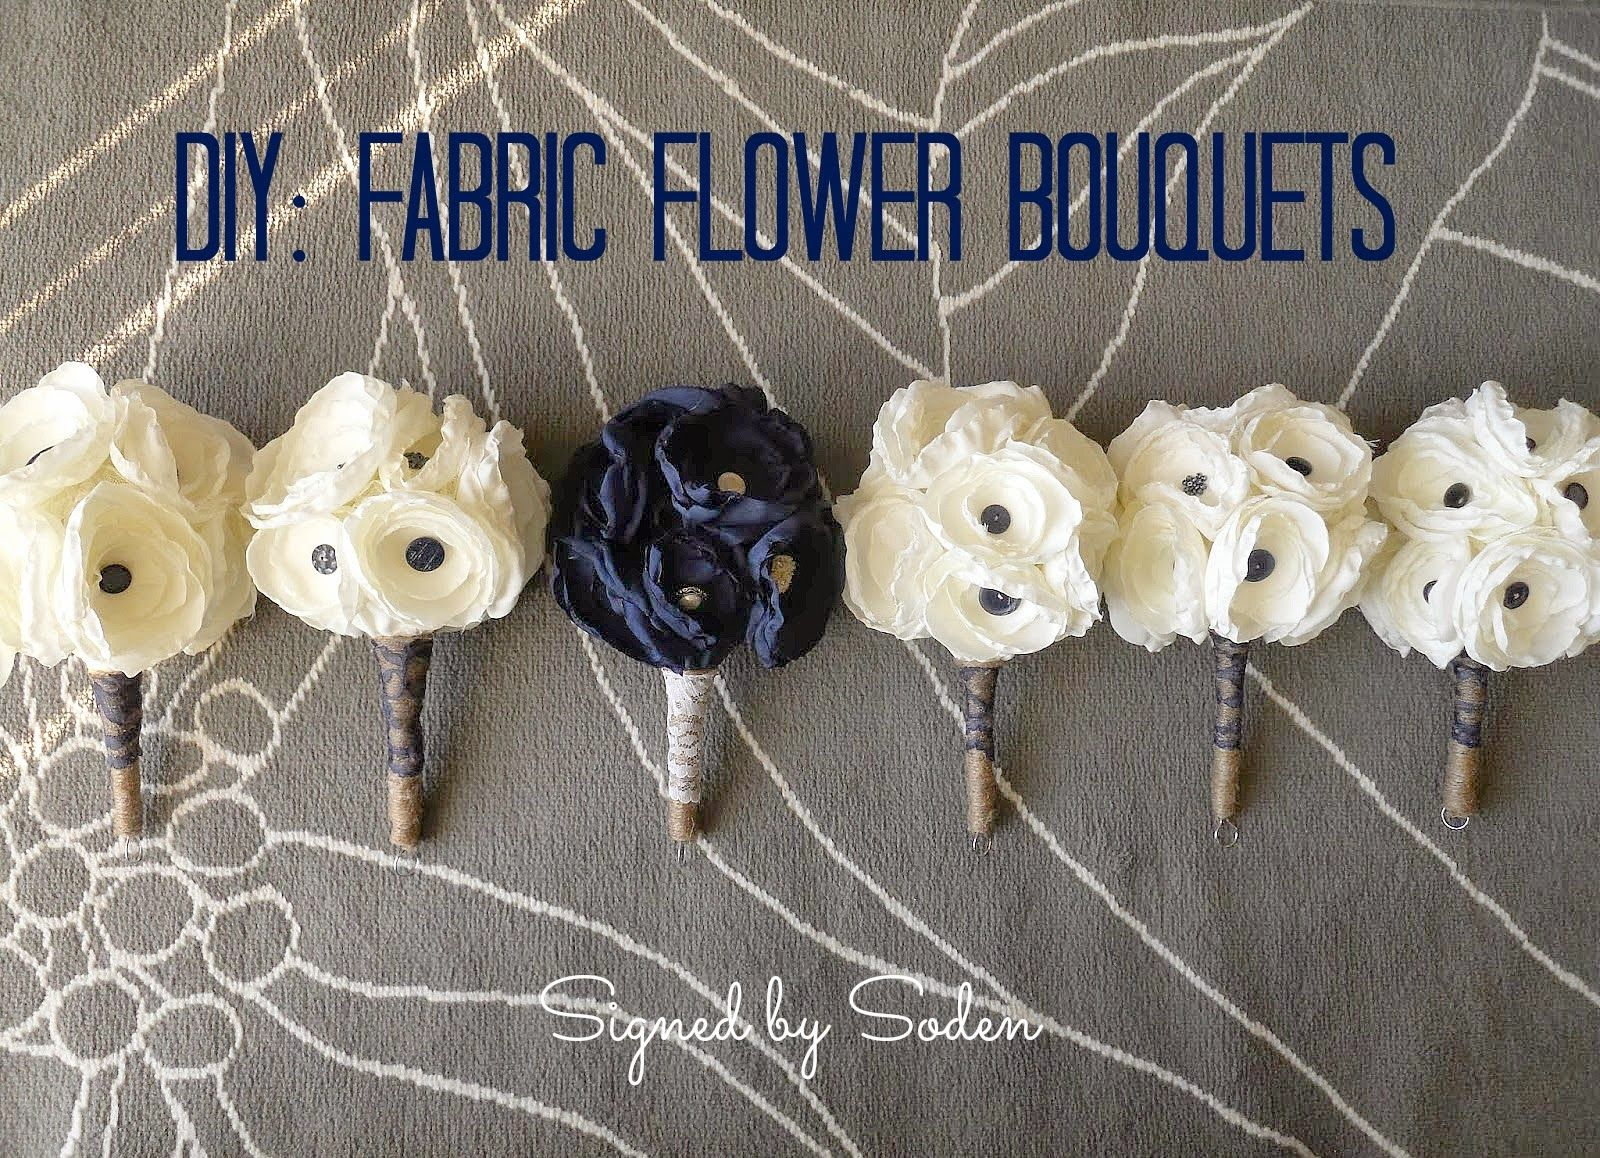 Fabric Flower Wedding Bouquets Basically Exactly What I Want To Do